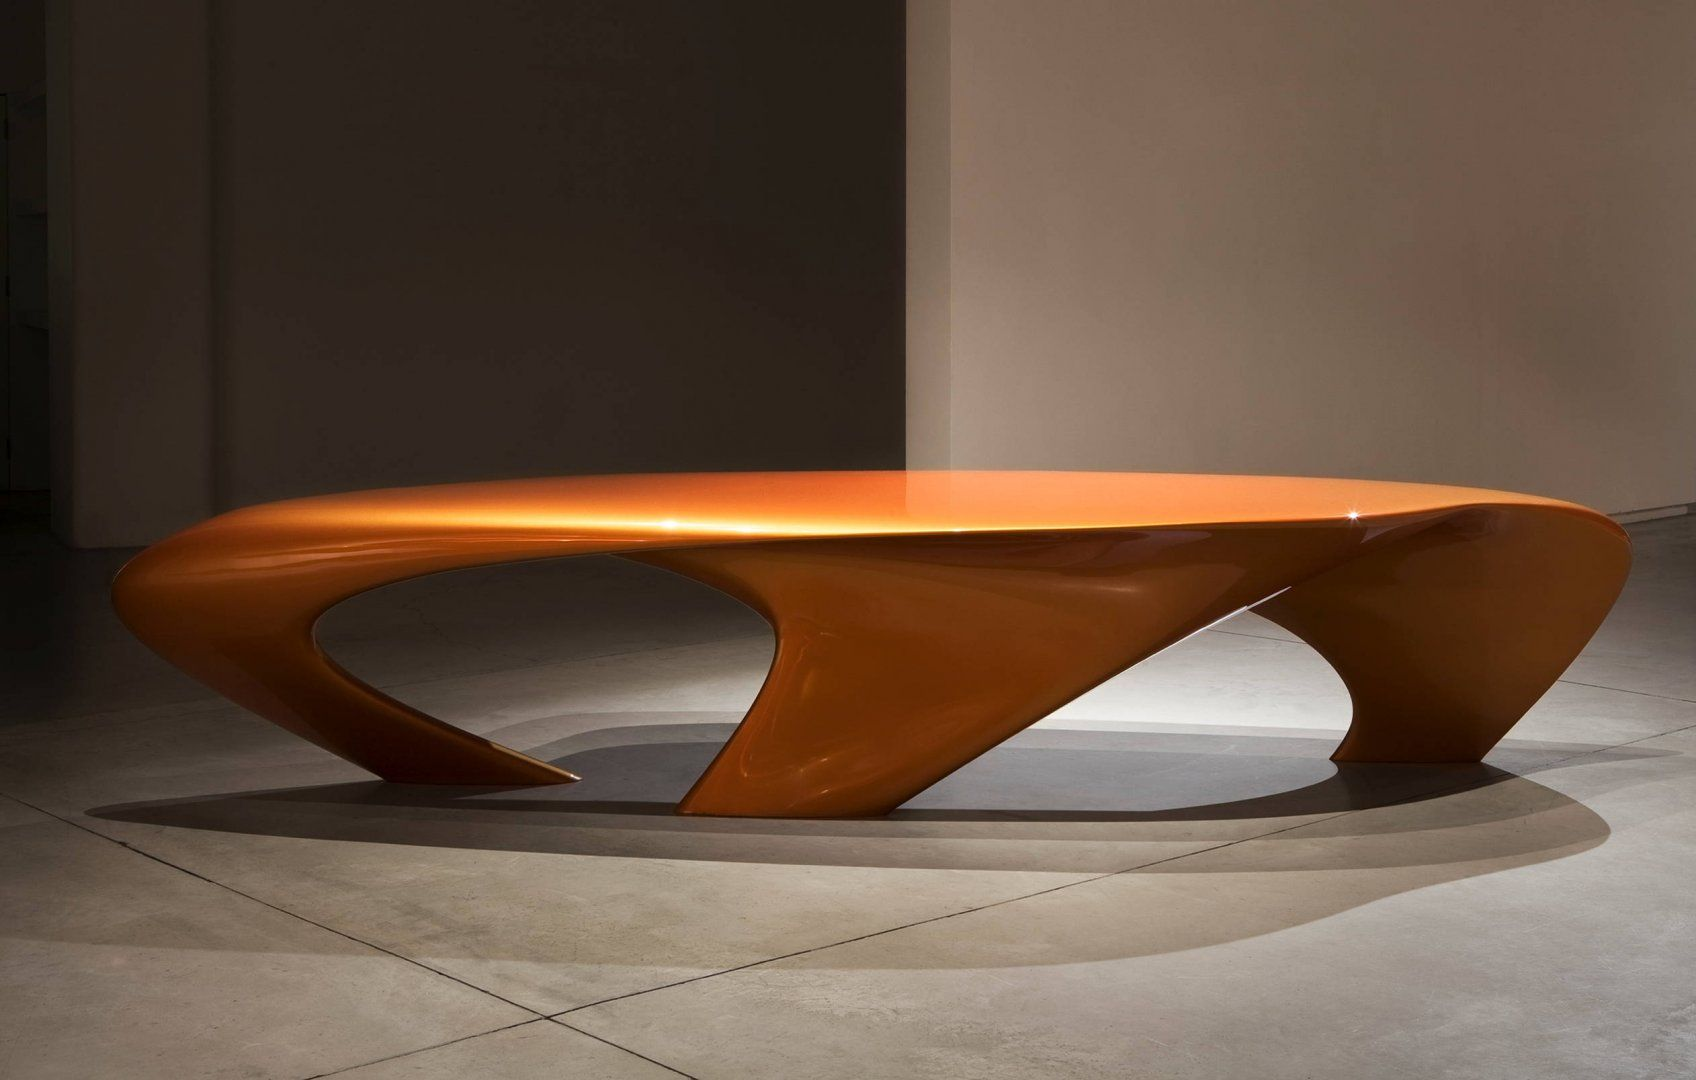 futuristic furniture design. Consoles Futuristic Furniture Design M